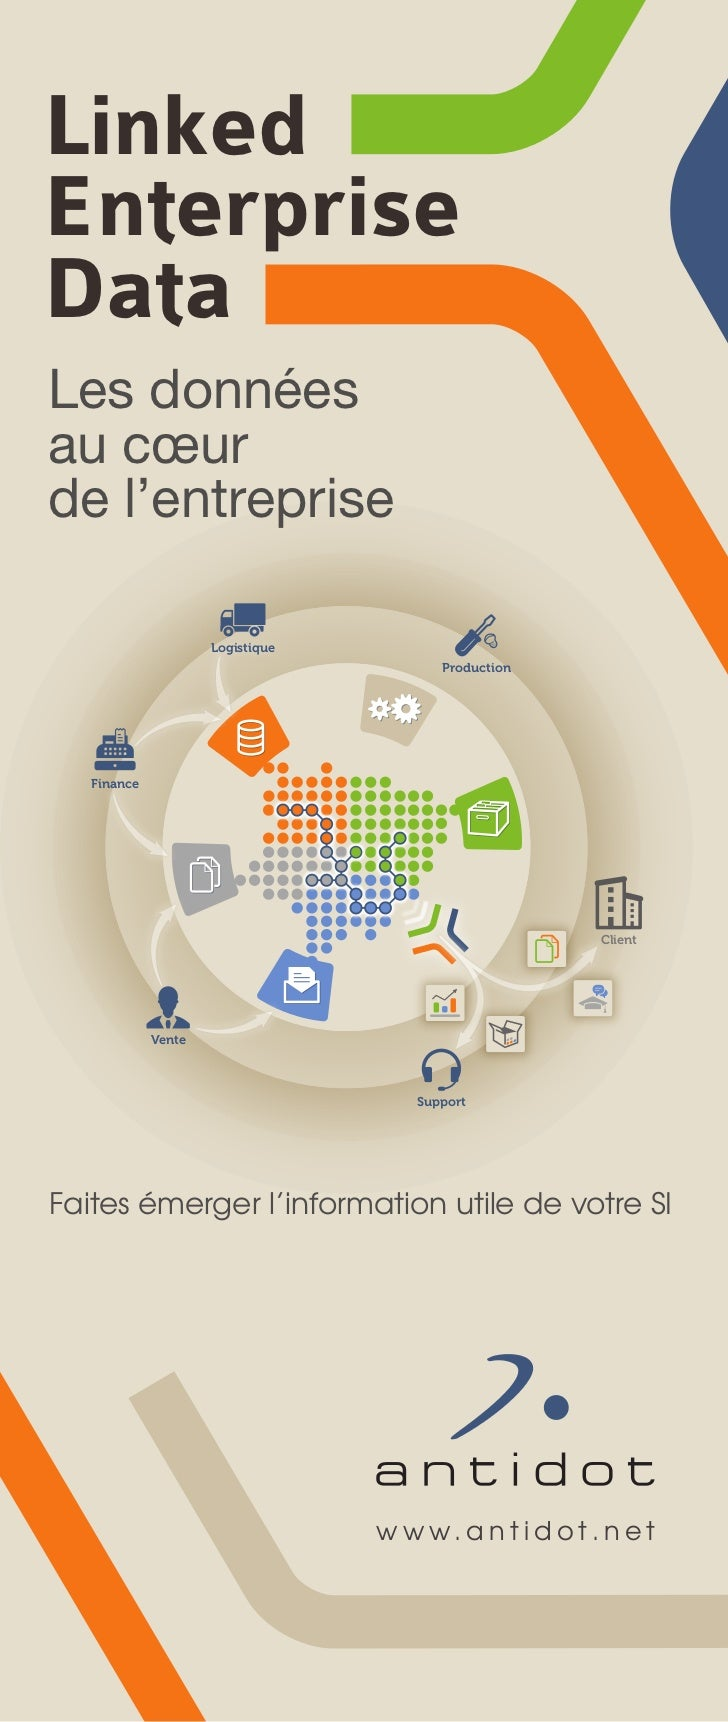 Linked Enterprise Data poster - French